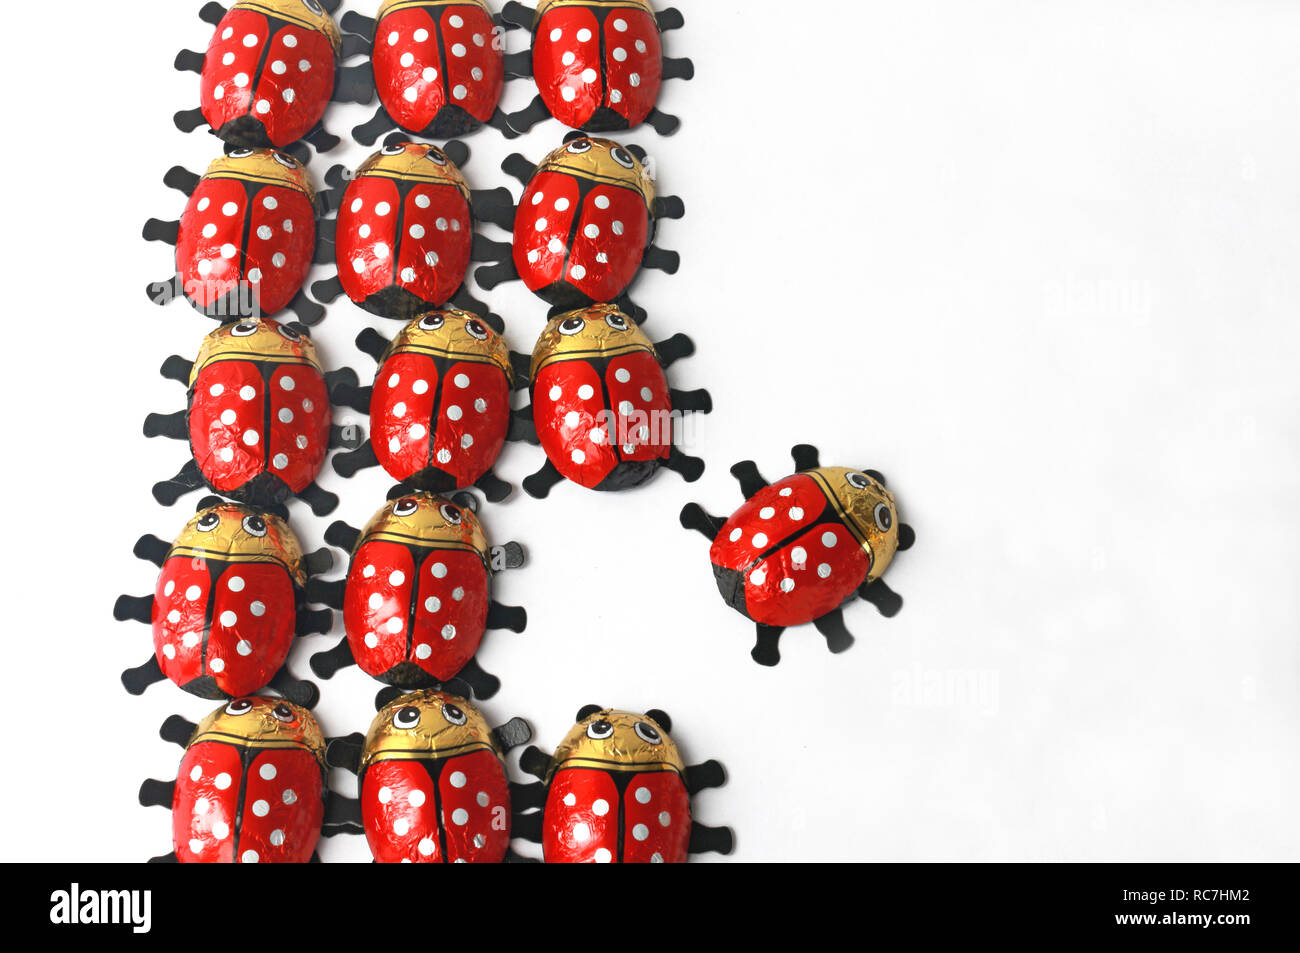 breaking new grounds, ladybug leaves its community and chooses a new path Stock Photo